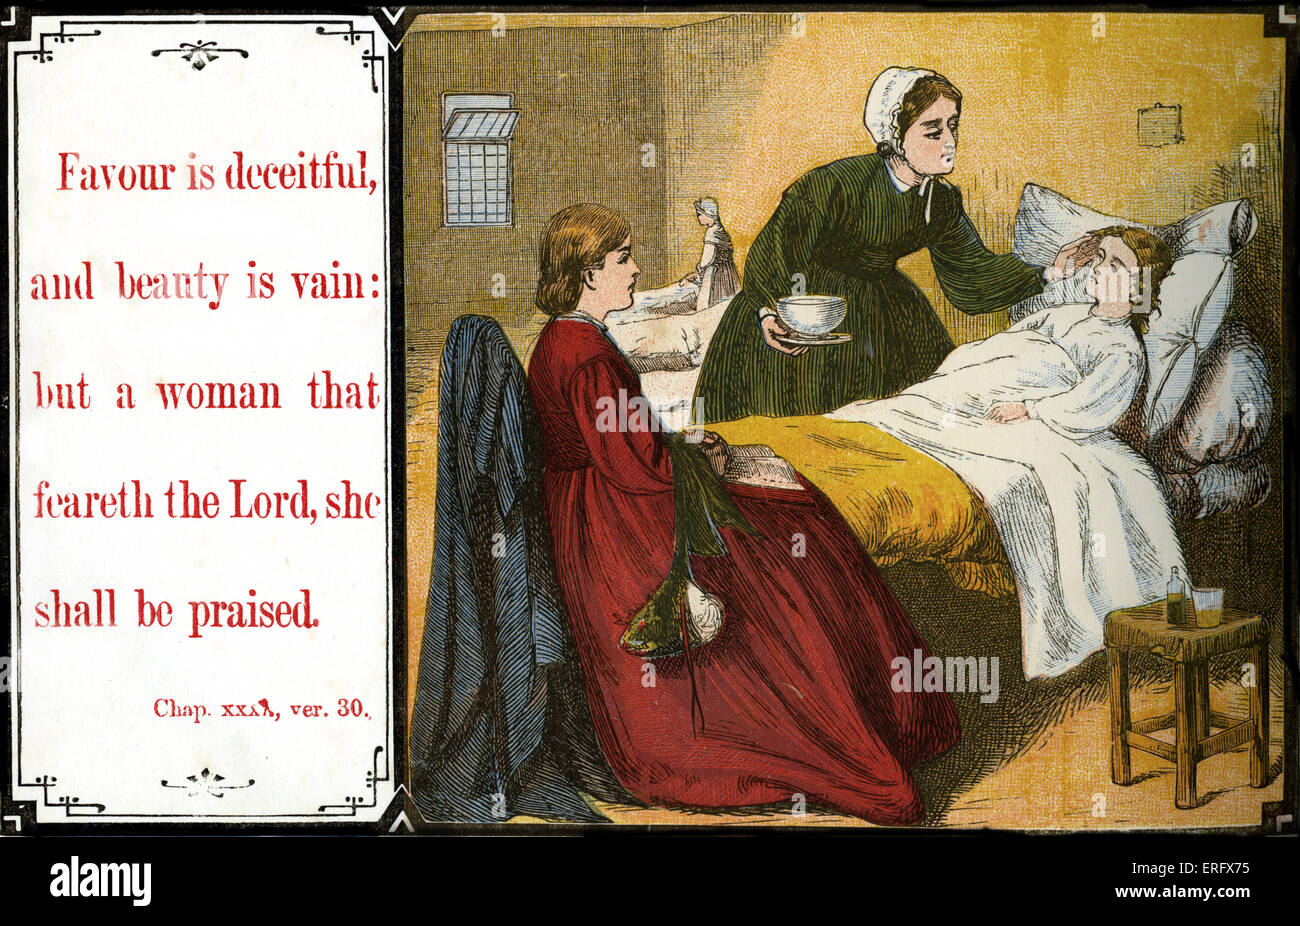 Teaching chidren morals:'  Favour is deceitful, and beauty is vain:  but a woman that feareth the Lord, she - Stock Image